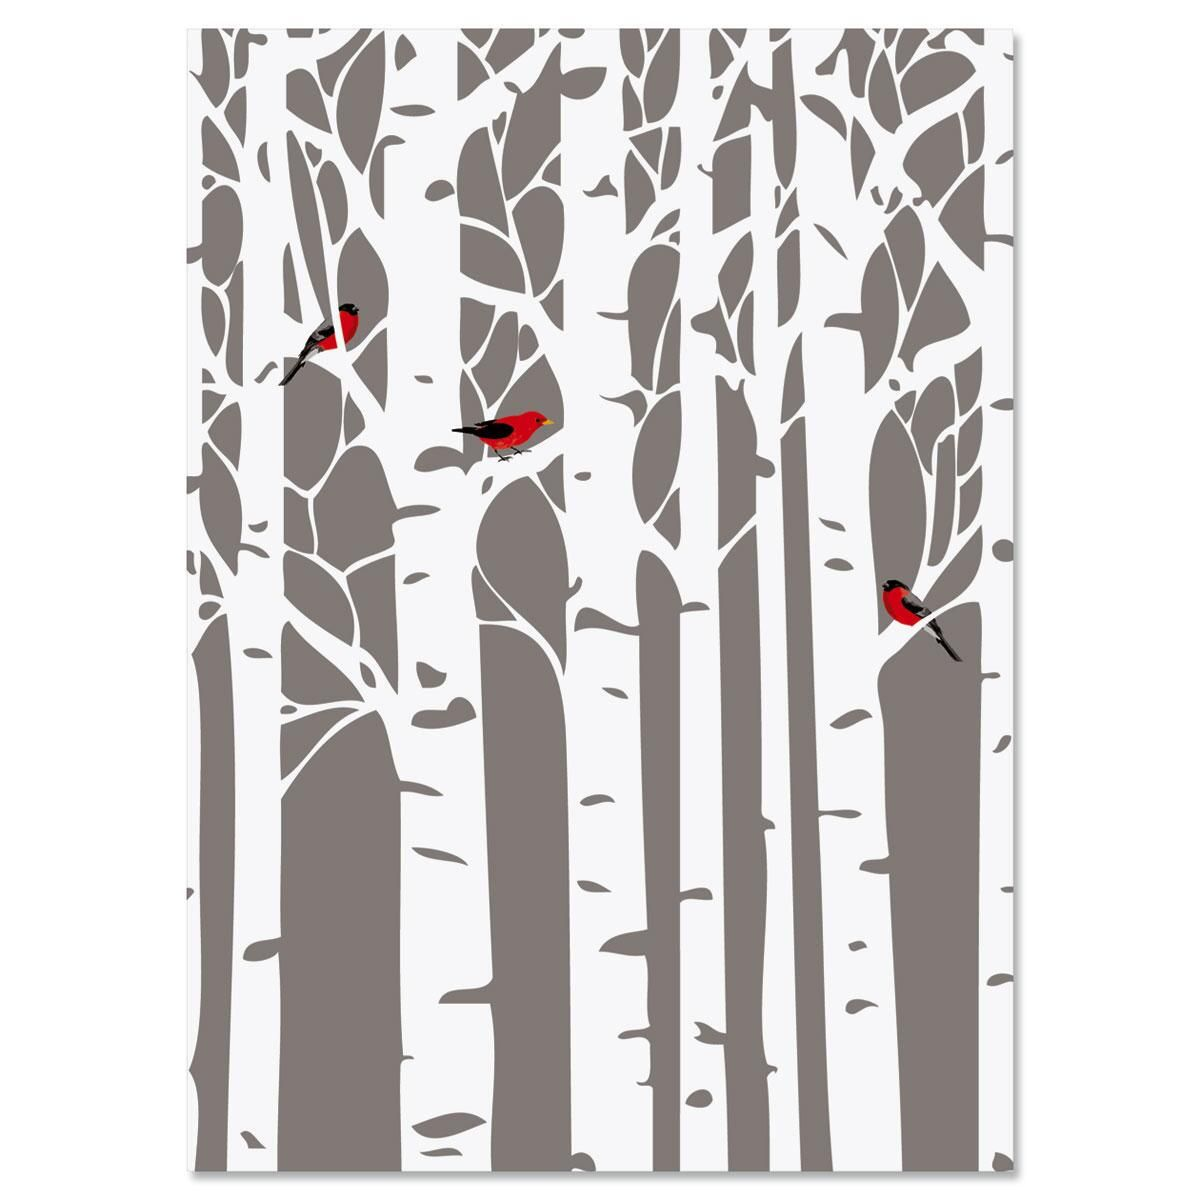 Aspens in Snow Nonpersonalized Christmas Cards - Set of 18